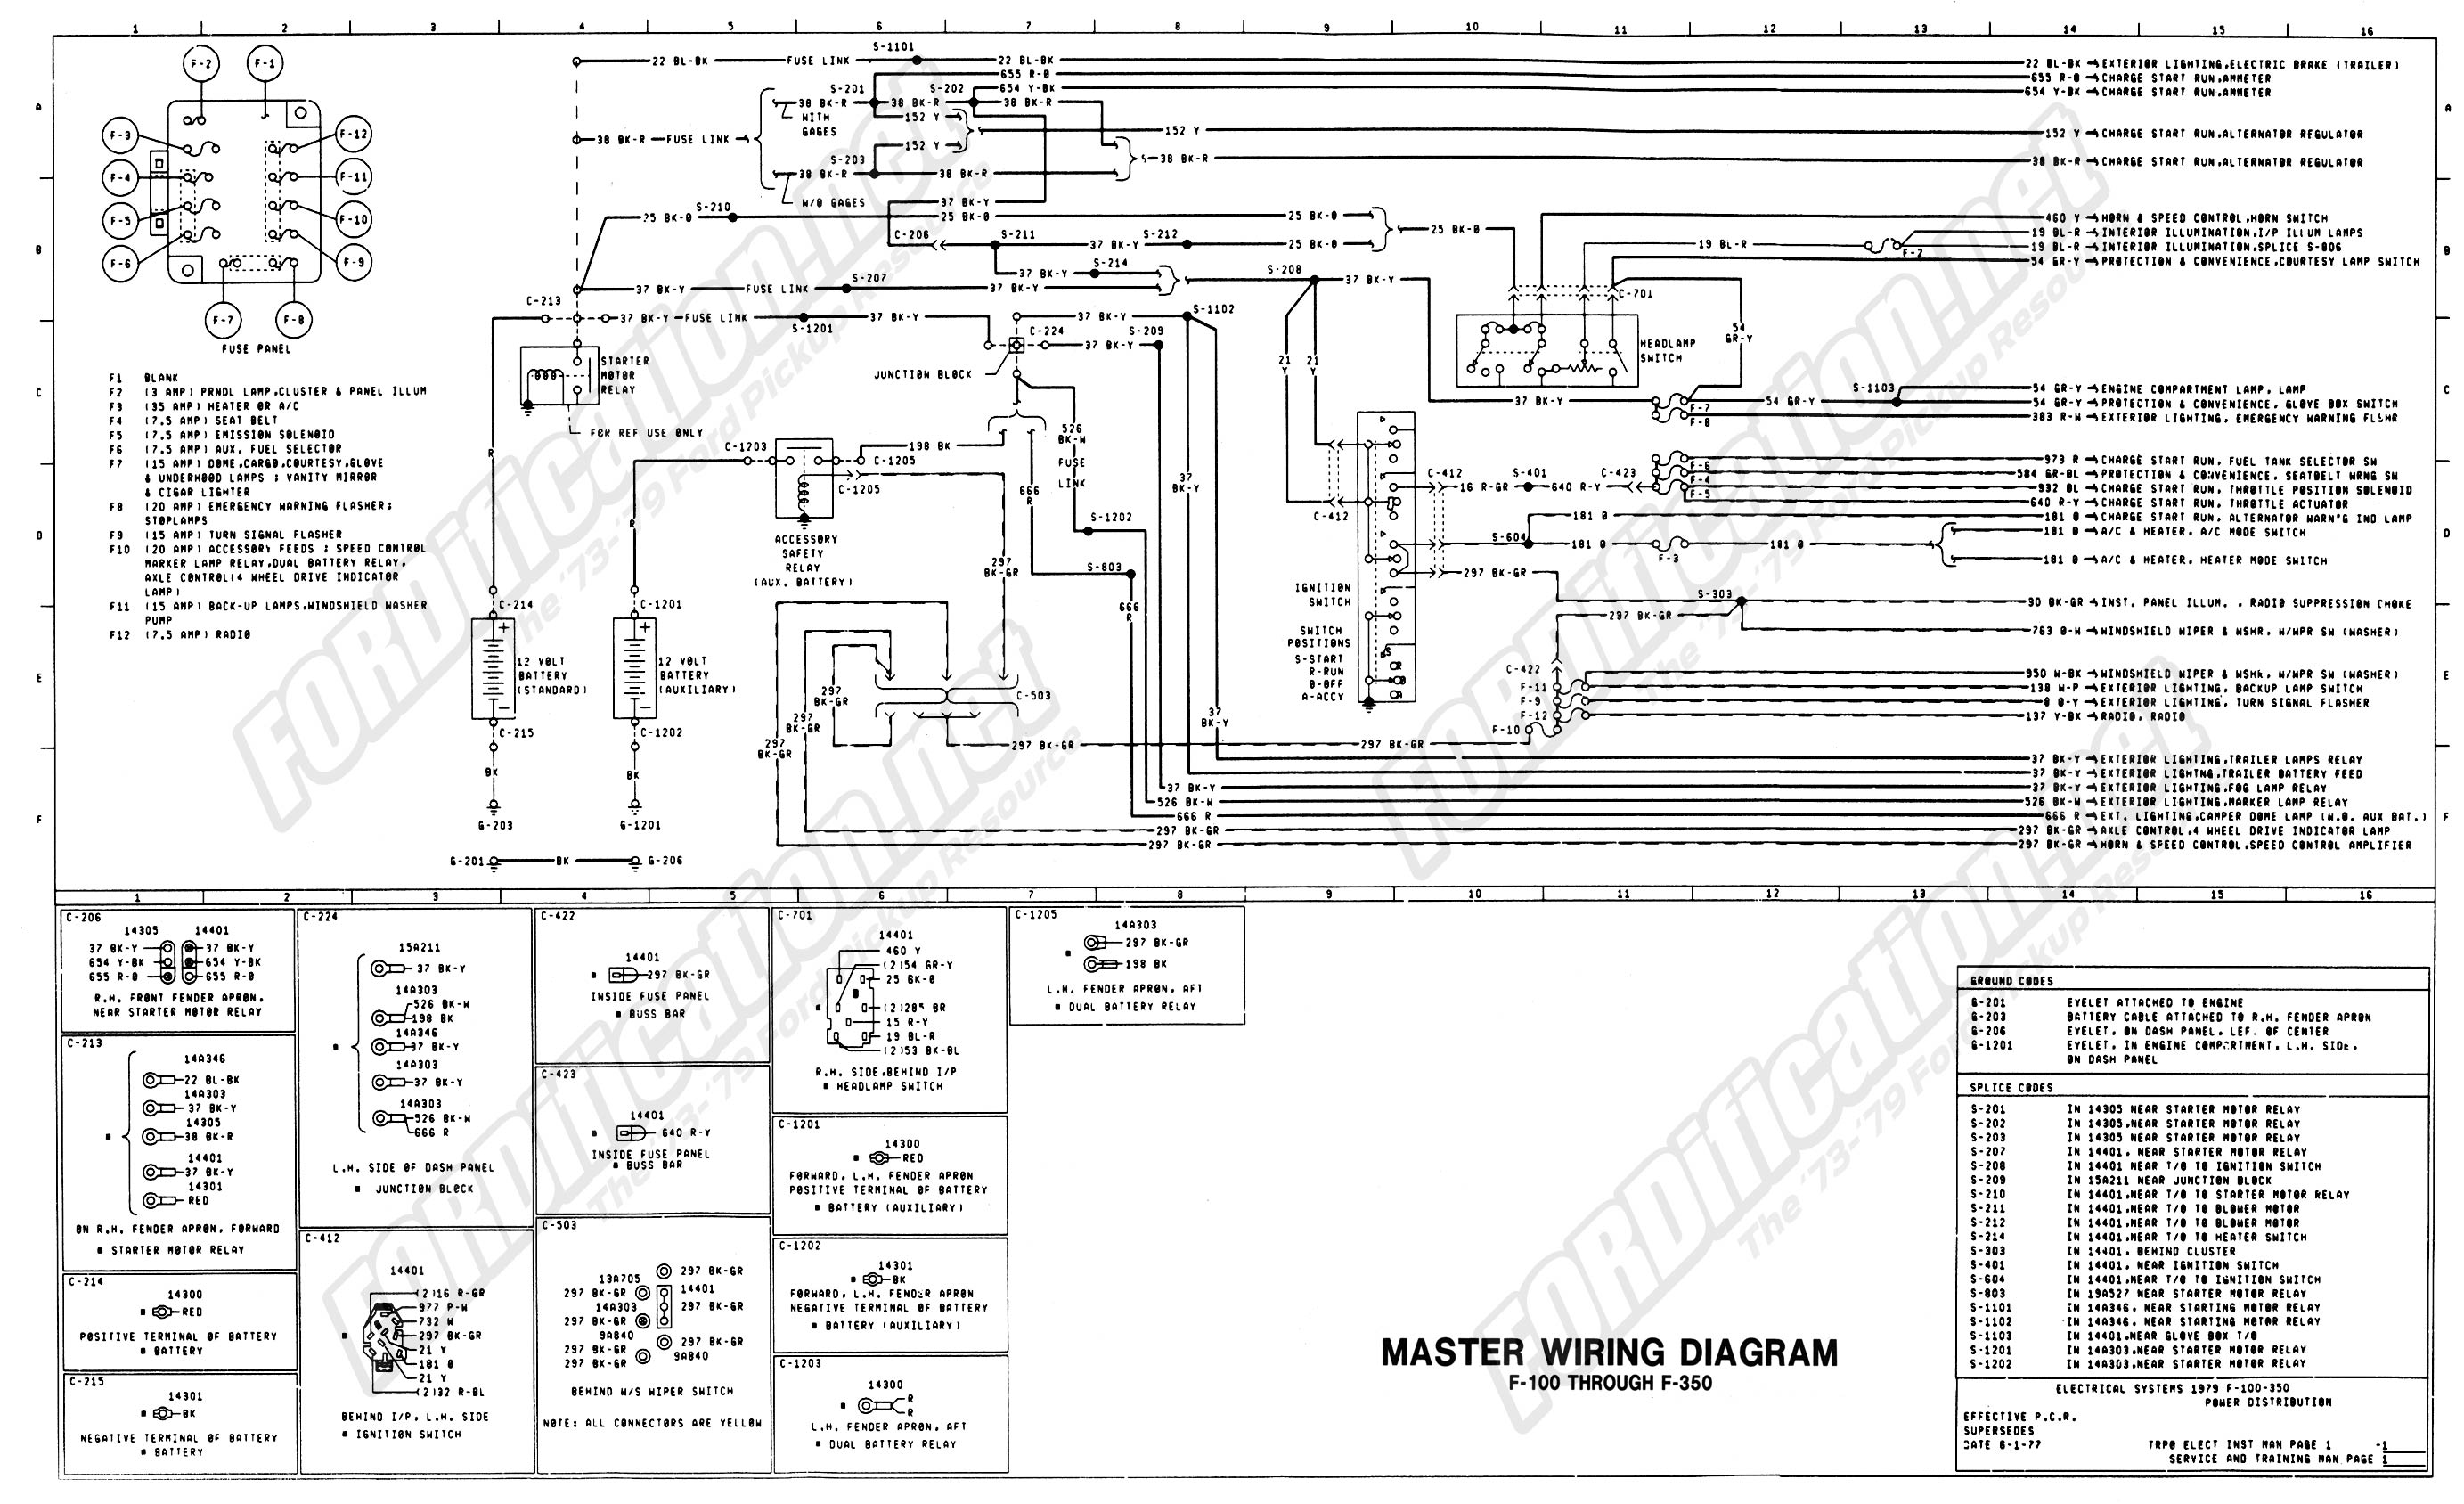 wiring_79master_1of9 1973 1979 ford truck wiring diagrams & schematics fordification net 1979 ford bronco fuse box diagram at edmiracle.co